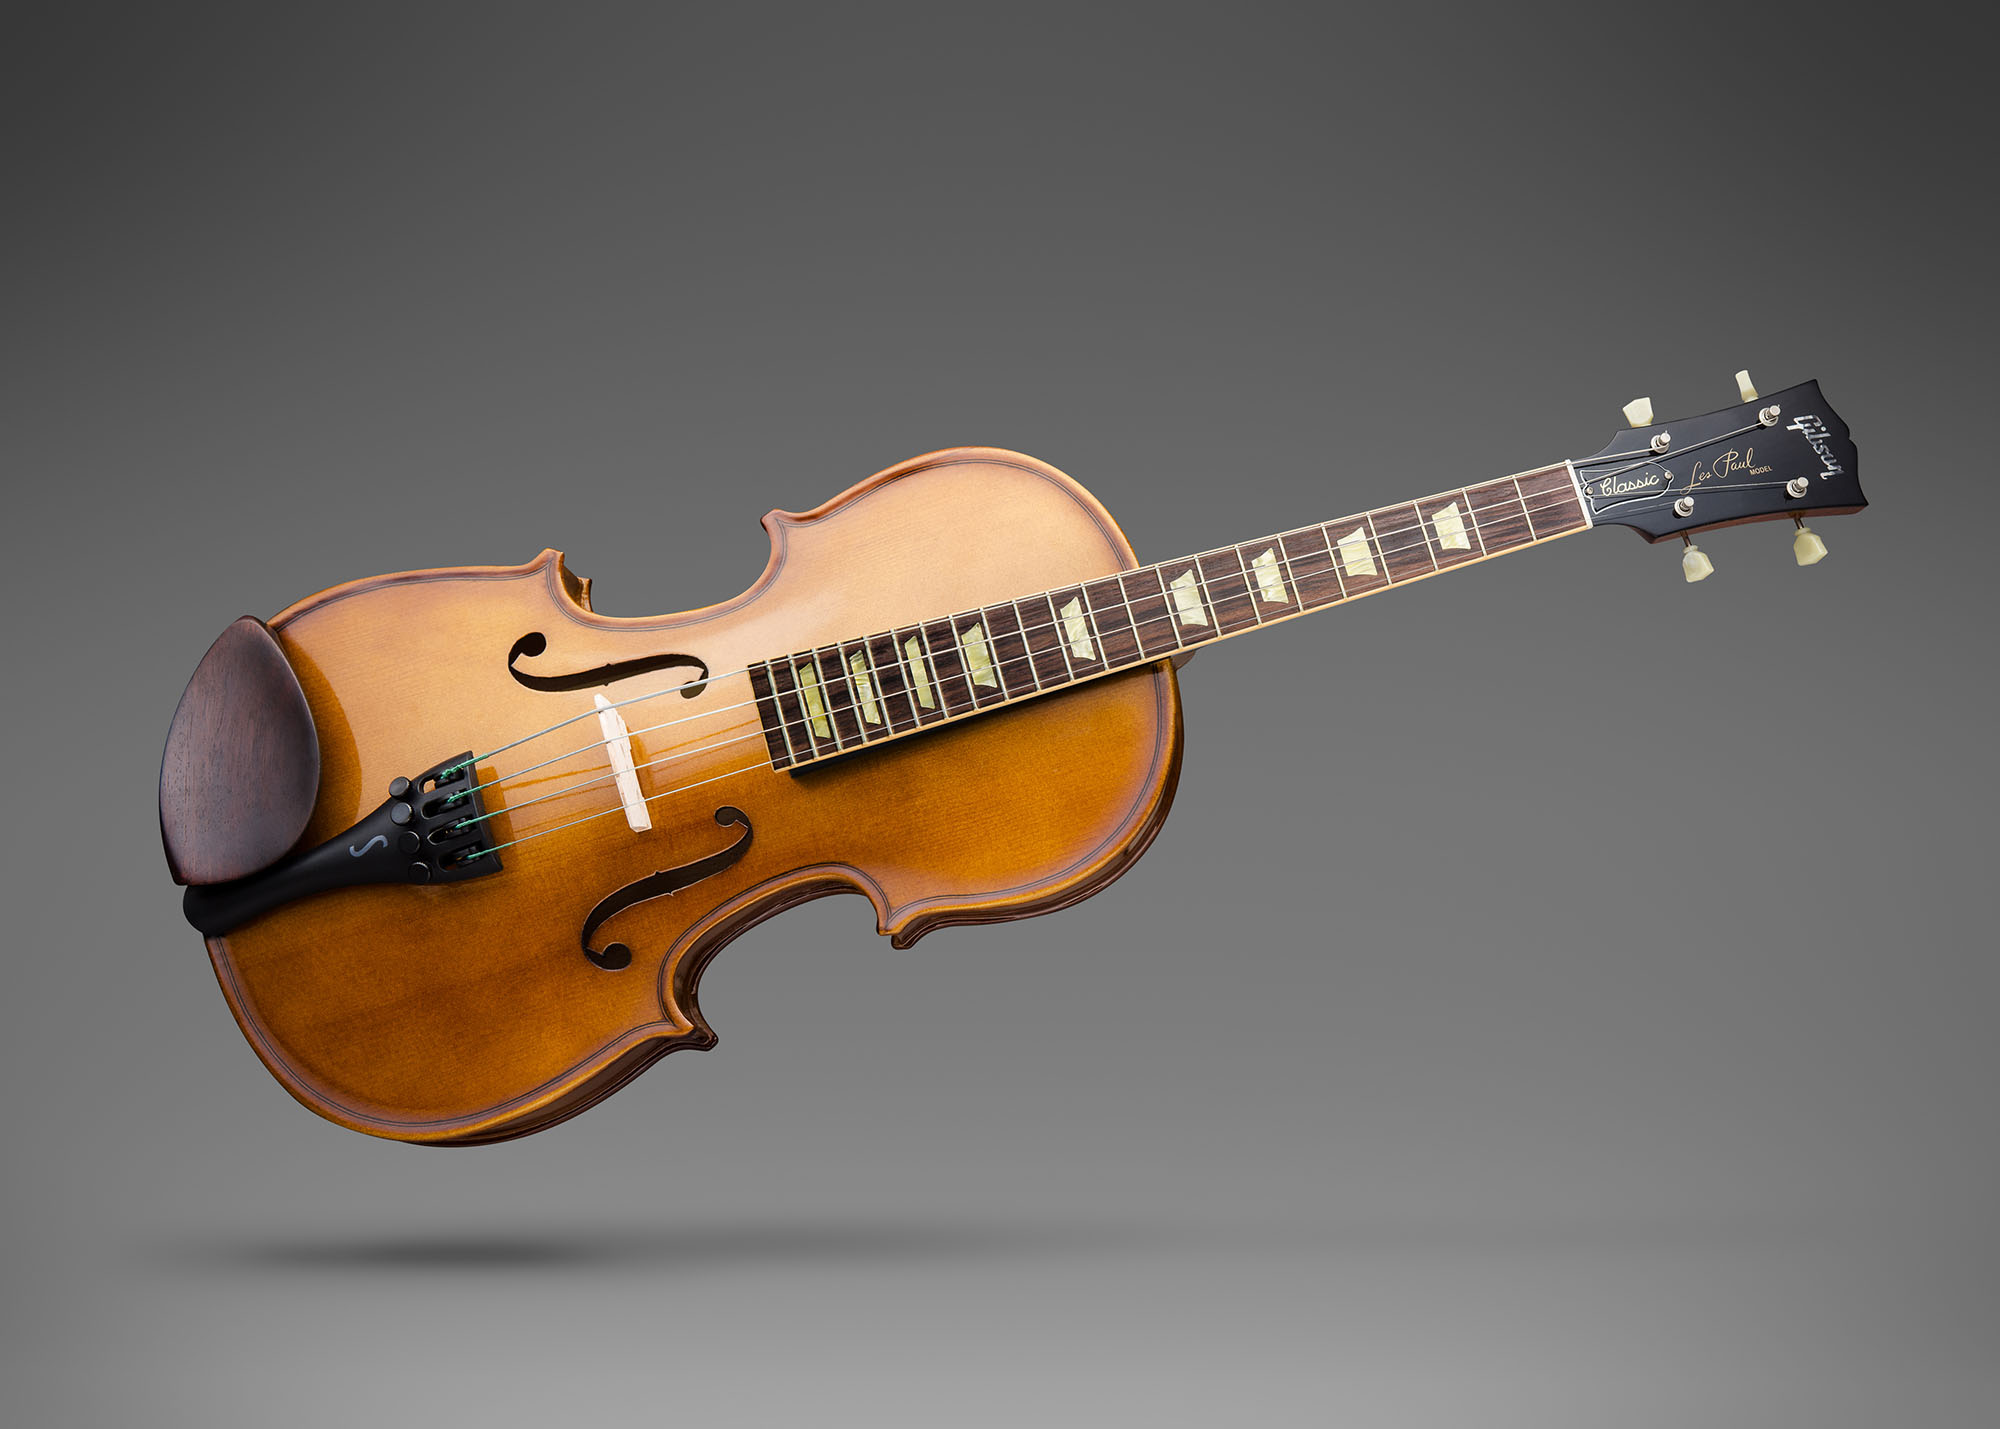 Ian Knaggs UK Commercial Still Life Photographer - Gibson Viola